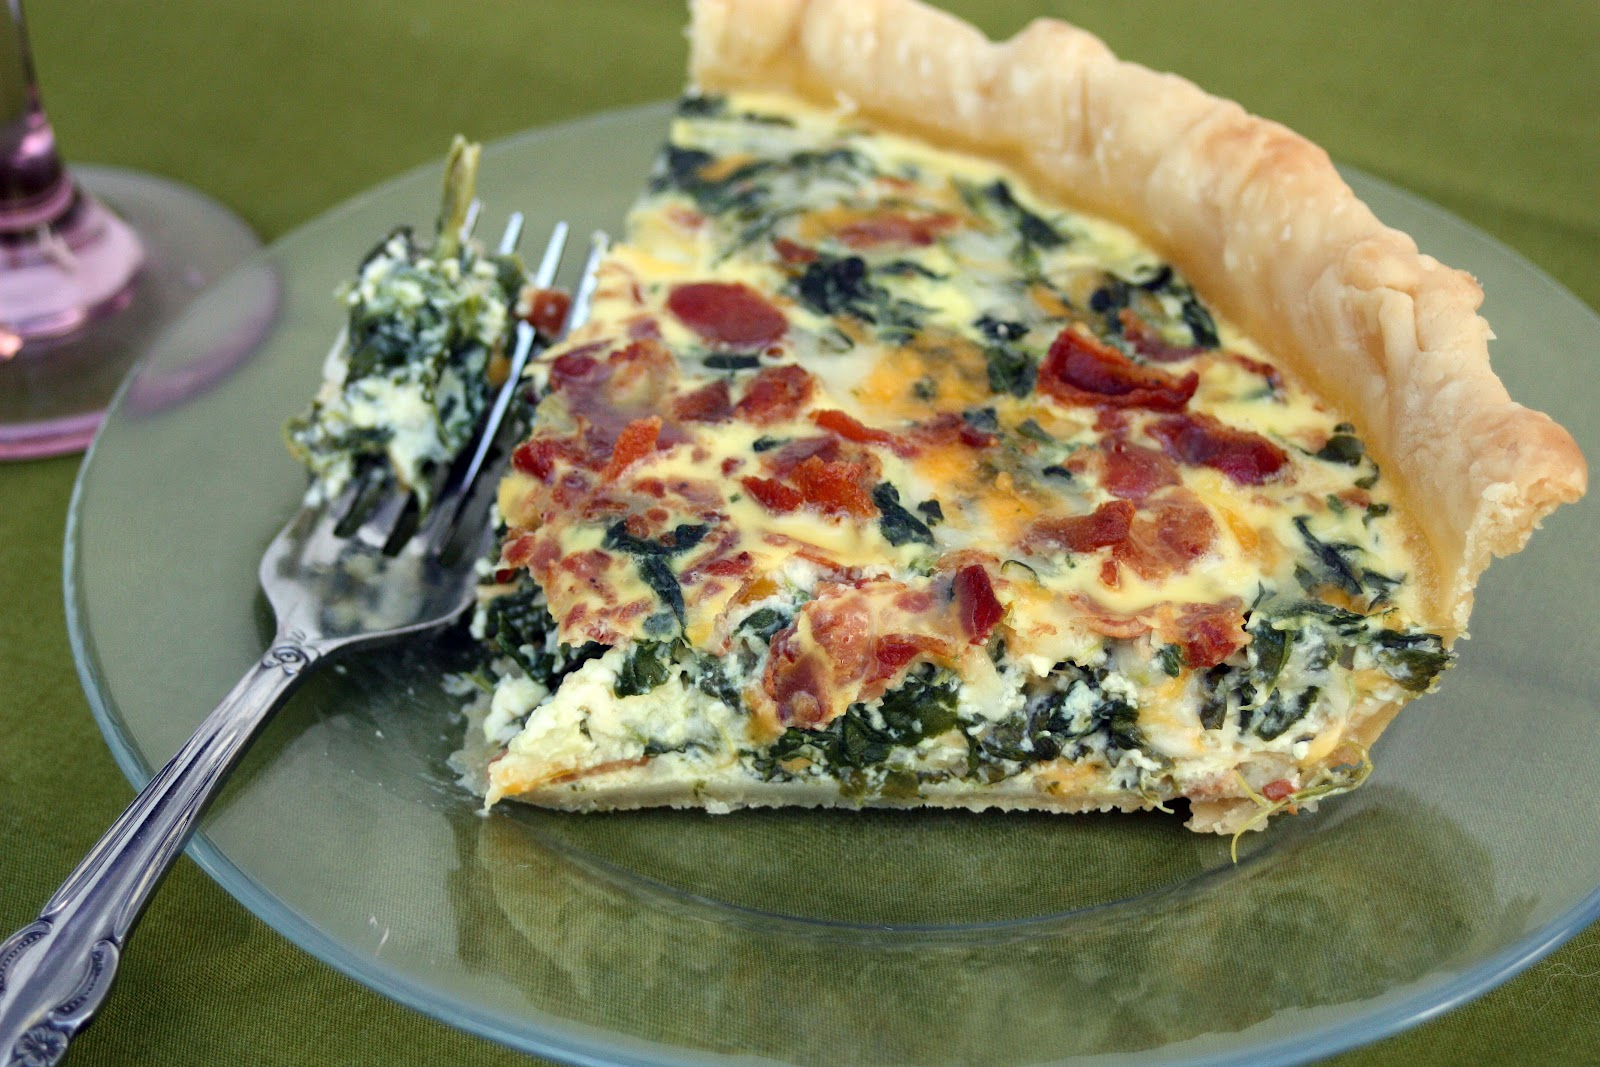 Copy of Spinach-Bacon Quiche